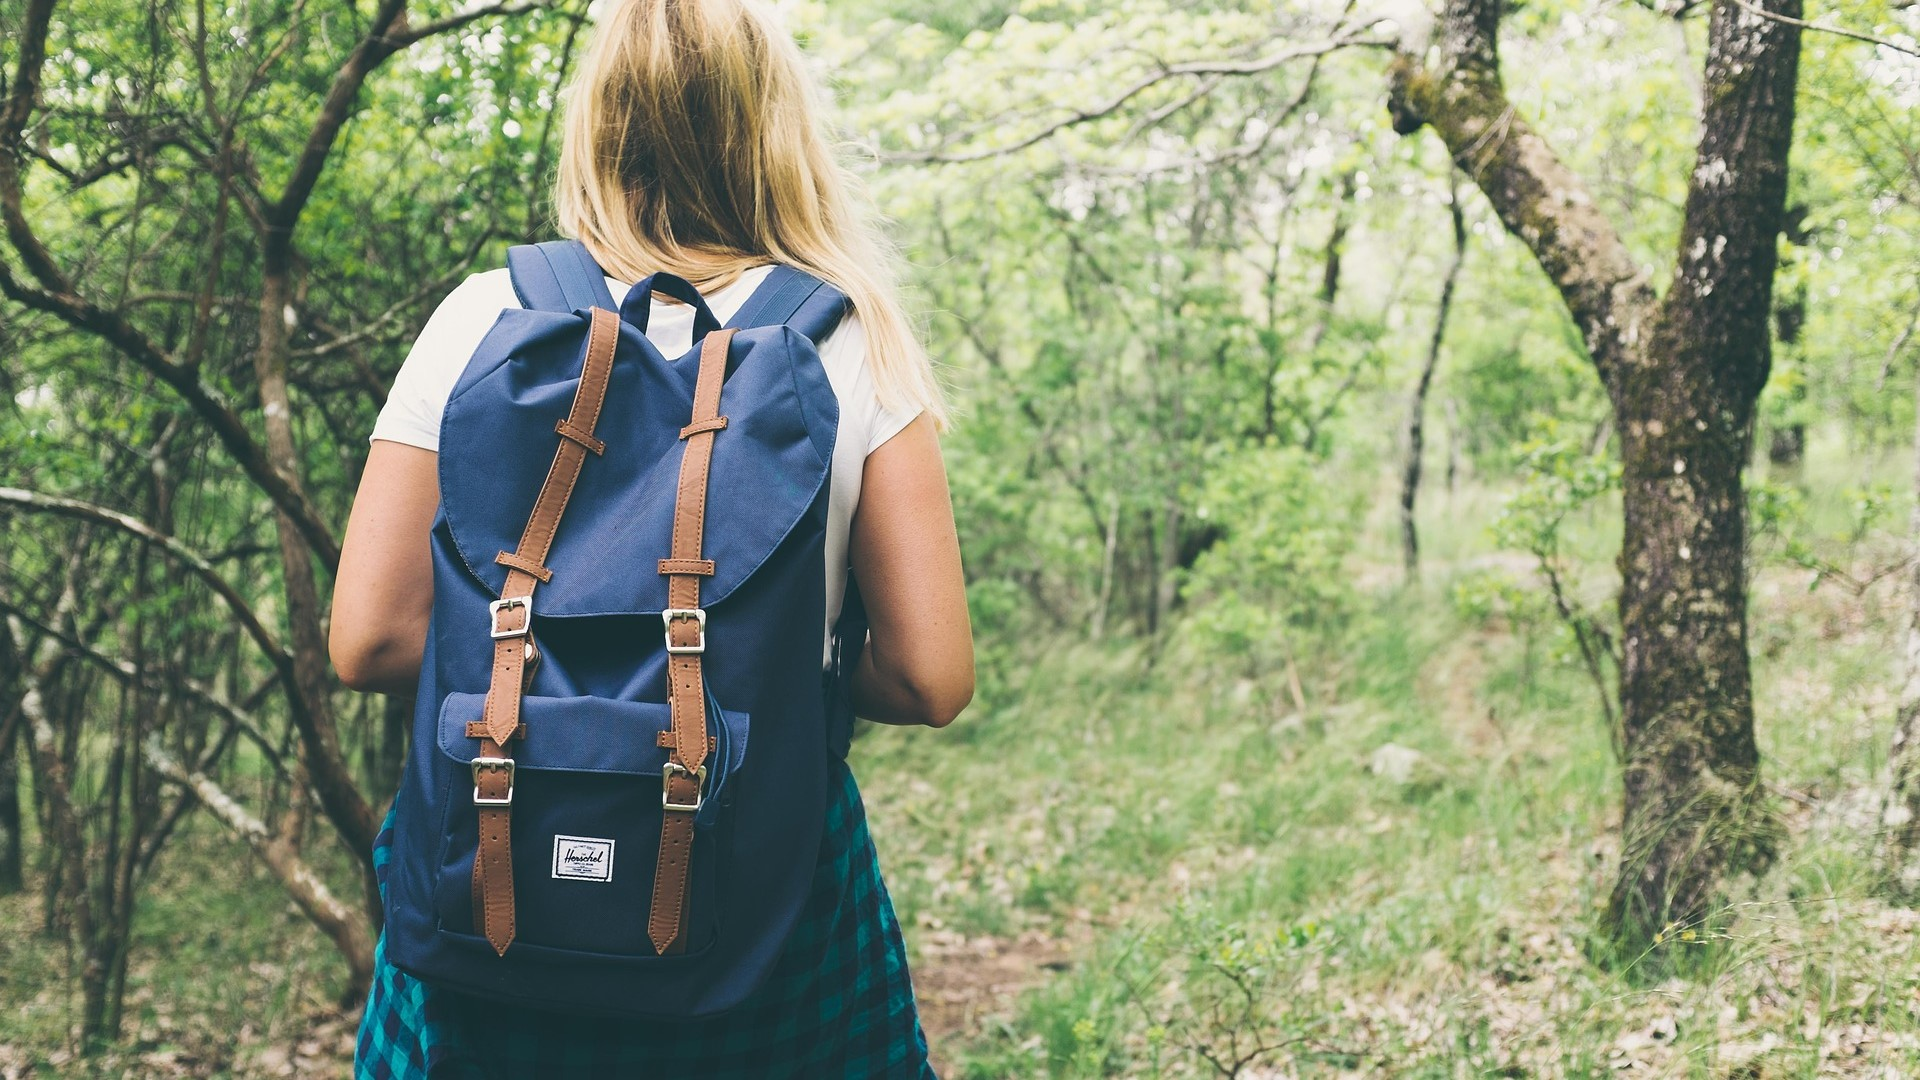 Bonus How to Pack a Backpack: Short Hike